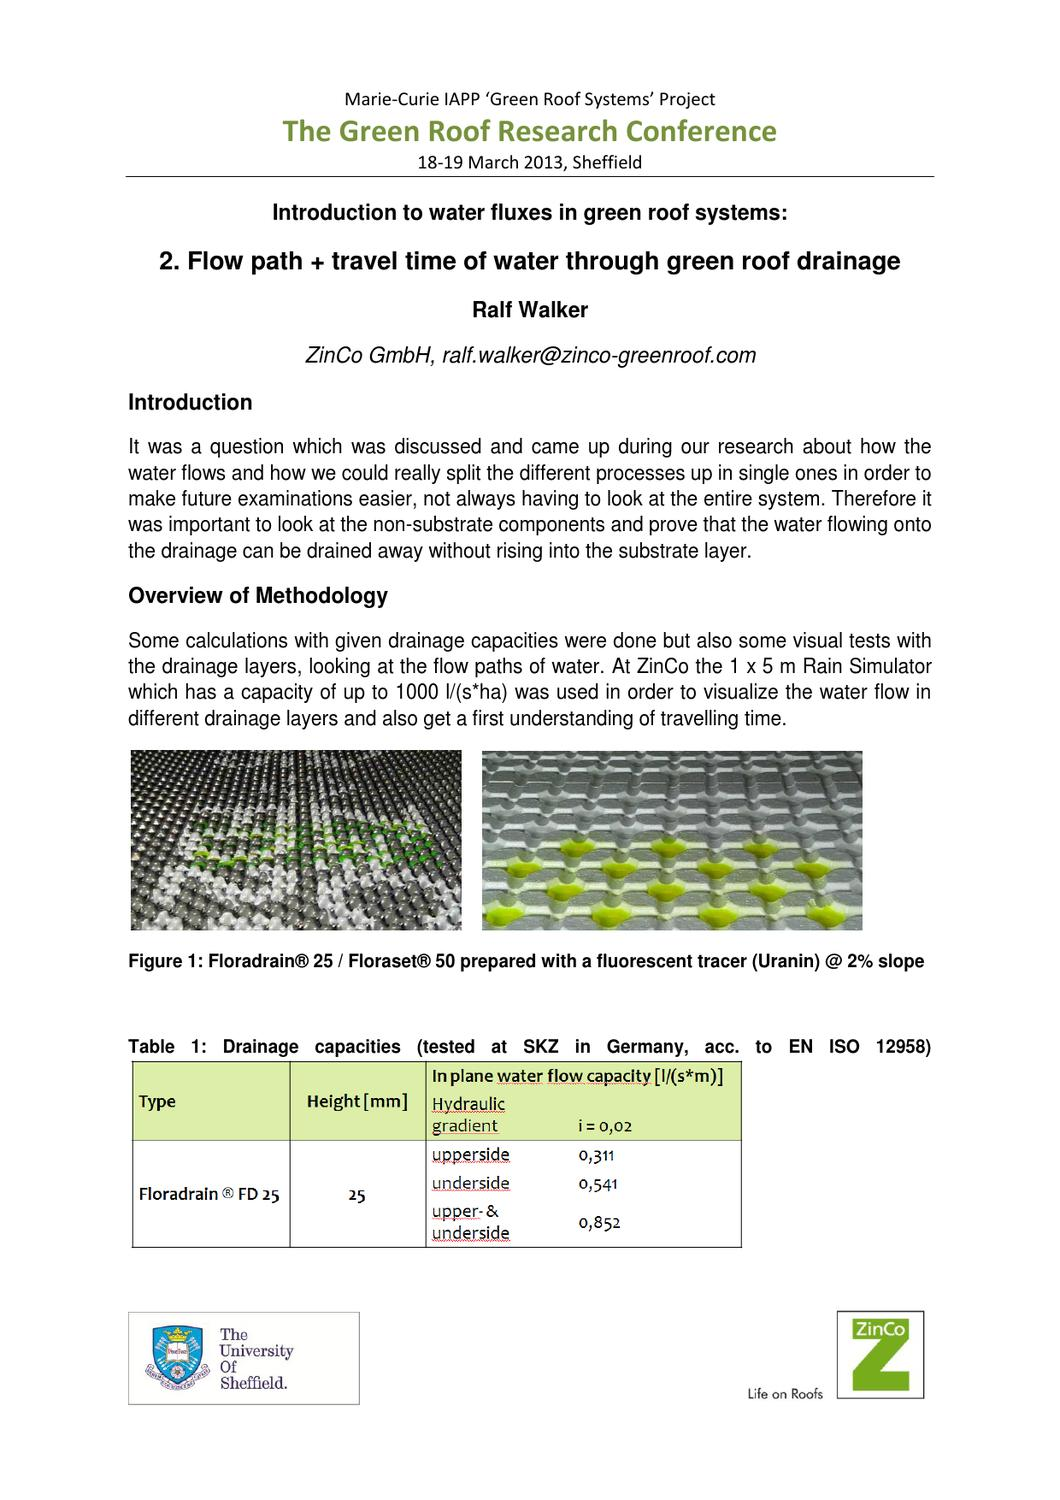 Introduction To Water Gardening: Introduction To Water Fluxes In Green Roof Systems 2